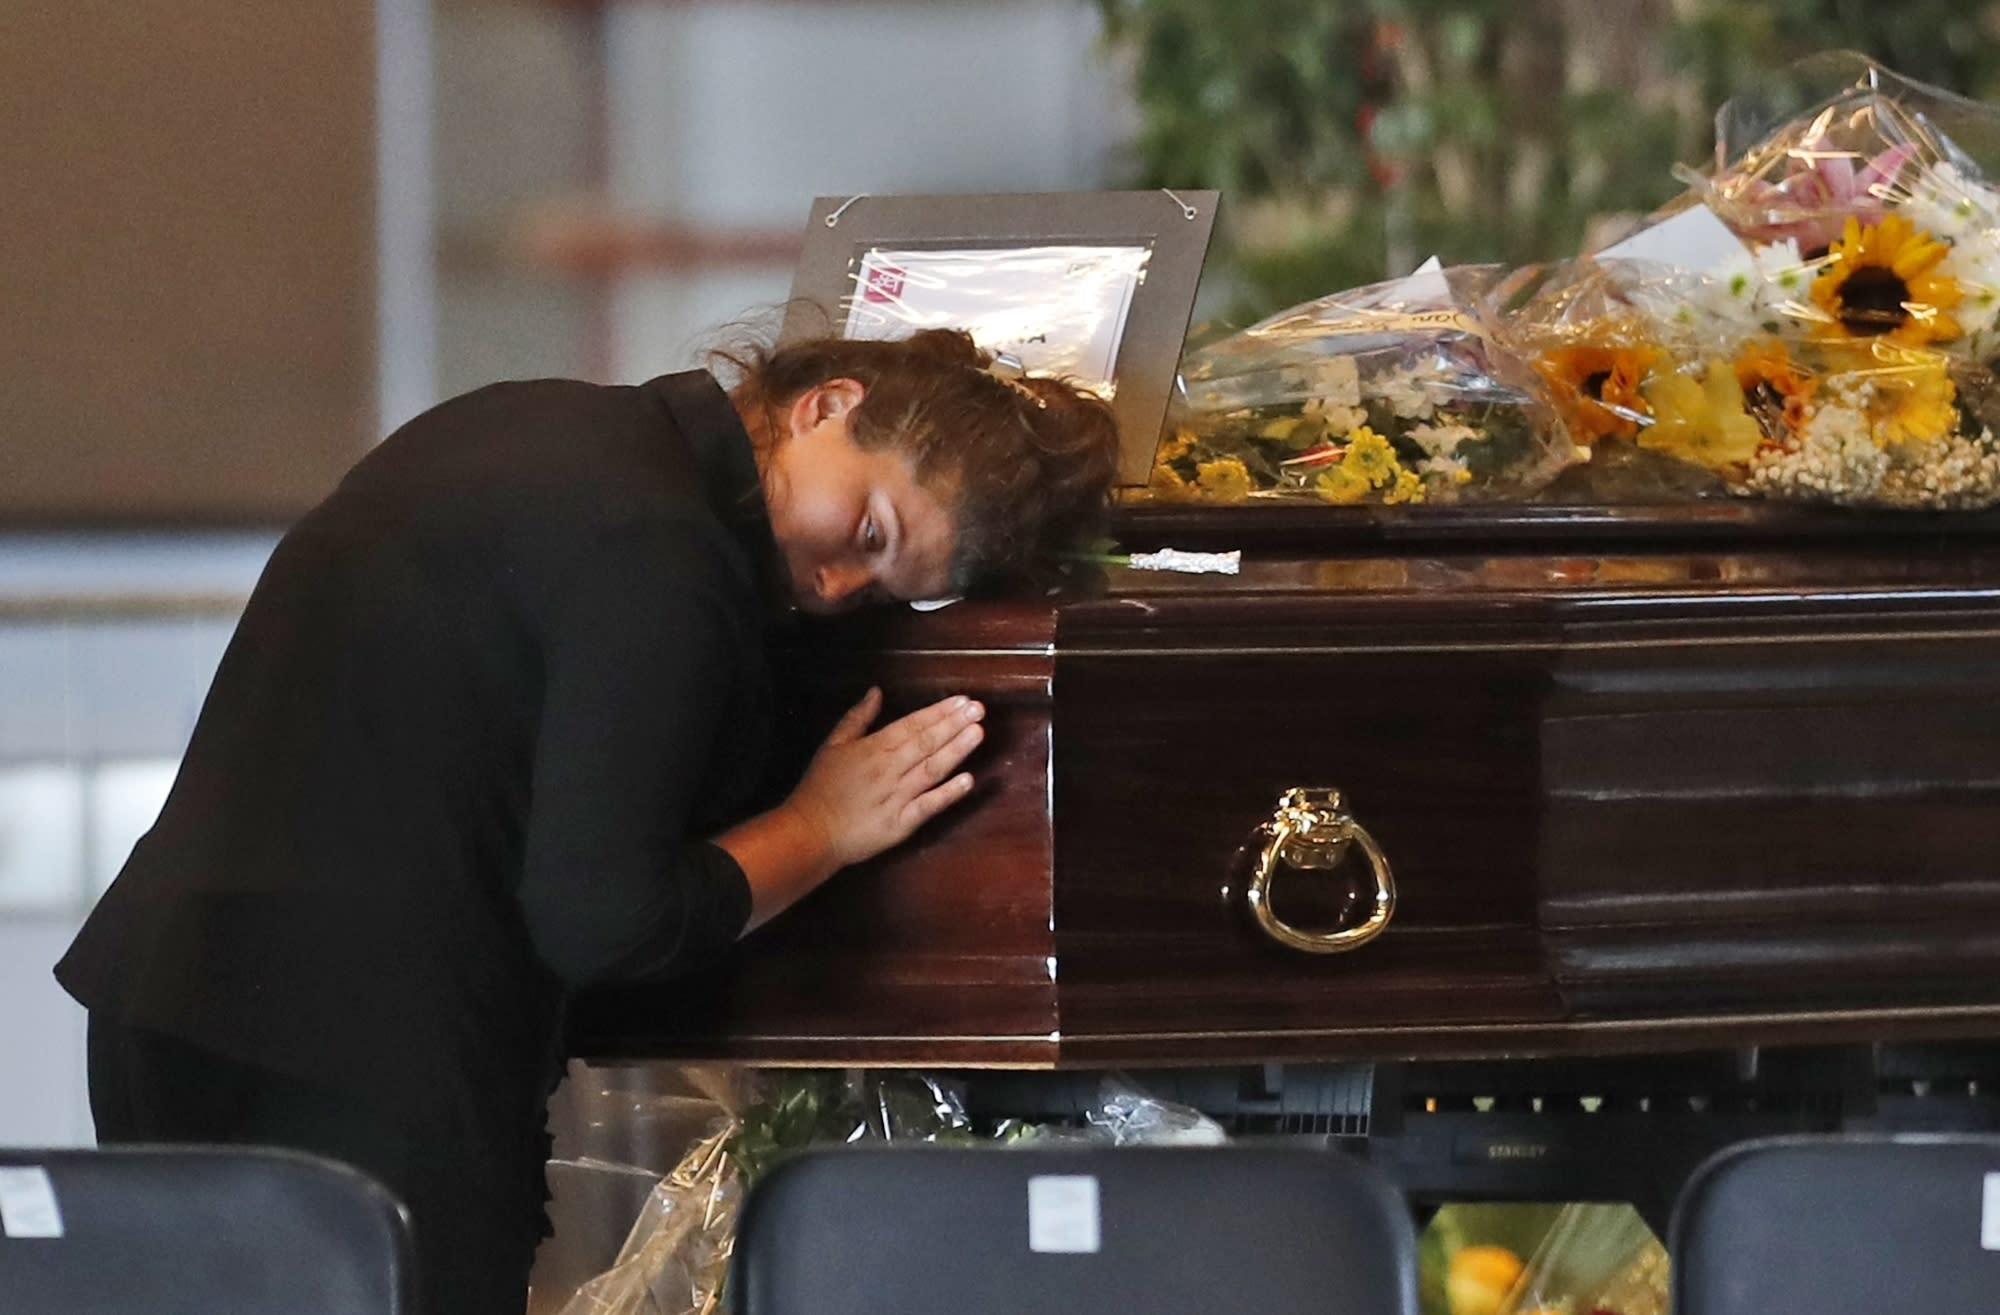 A woman mourns a victim of a collapsed highway bridge, at the Fiera di Genova exhibition center, where some of the coffins are laid in state, in Genoa, Italy, Friday, Aug. 17, 2018. A state funeral for most of the victims will take place in Genoa on Saturday. (AP Photo/Antonio Calanni)